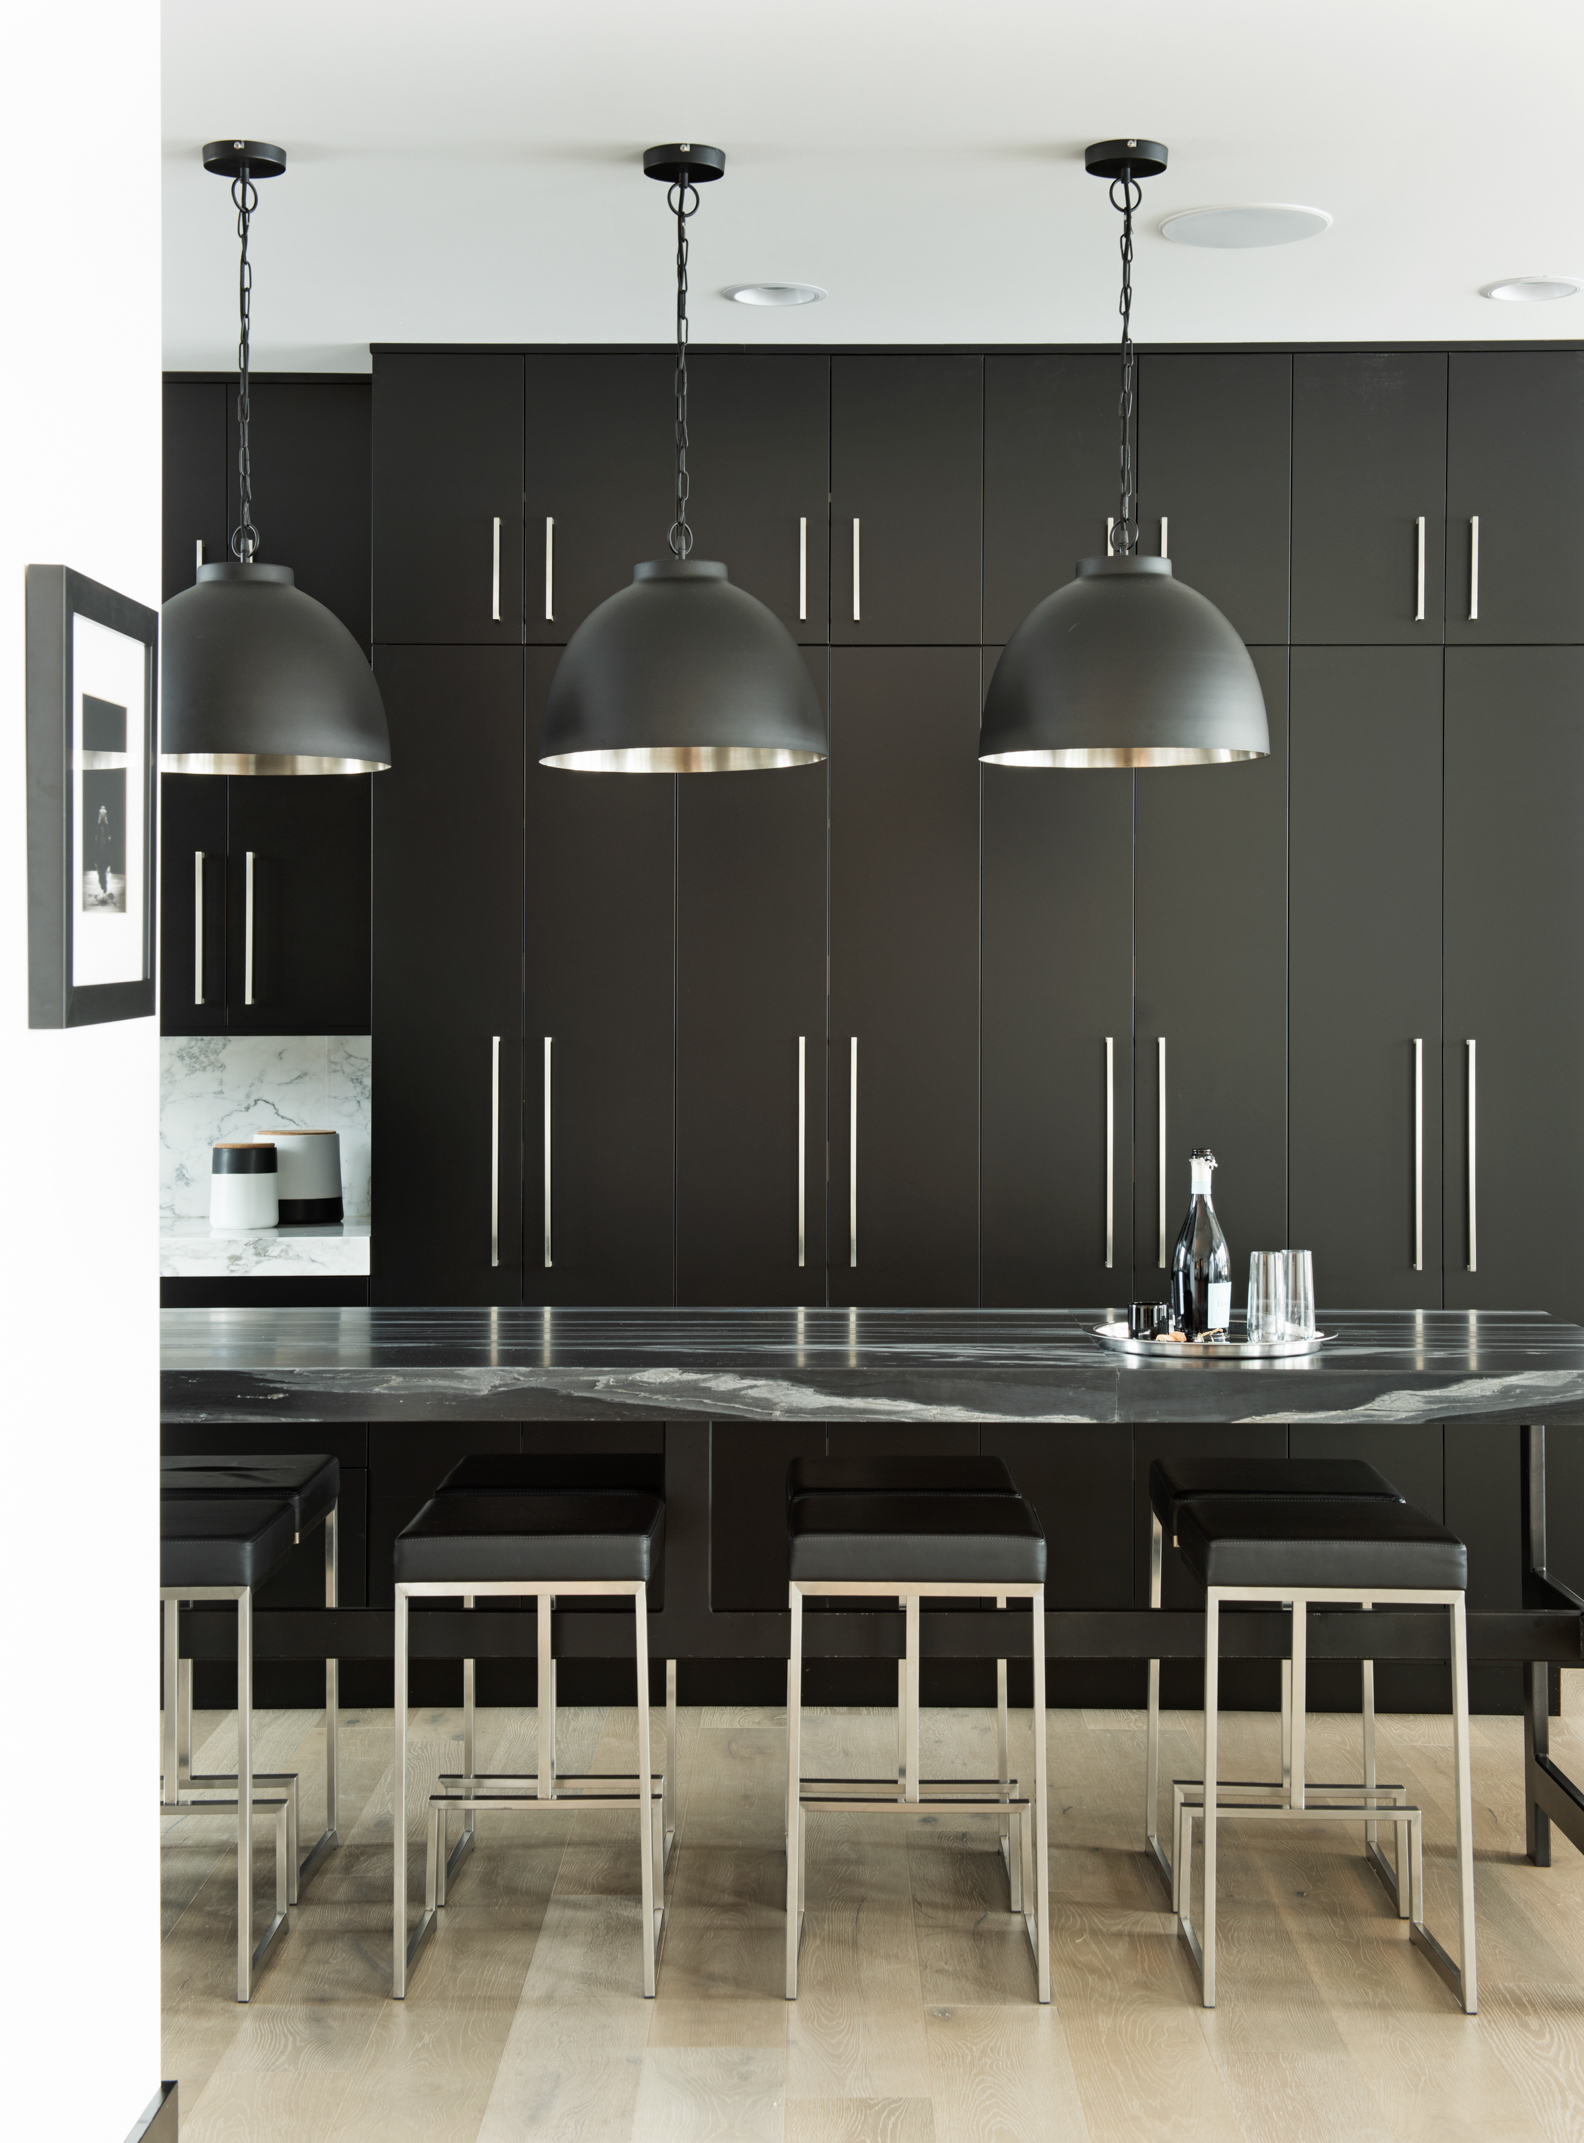 This is my favorite shot of the day. The lines and again the blacks and whites. This is such a classic, stylish kitchen.